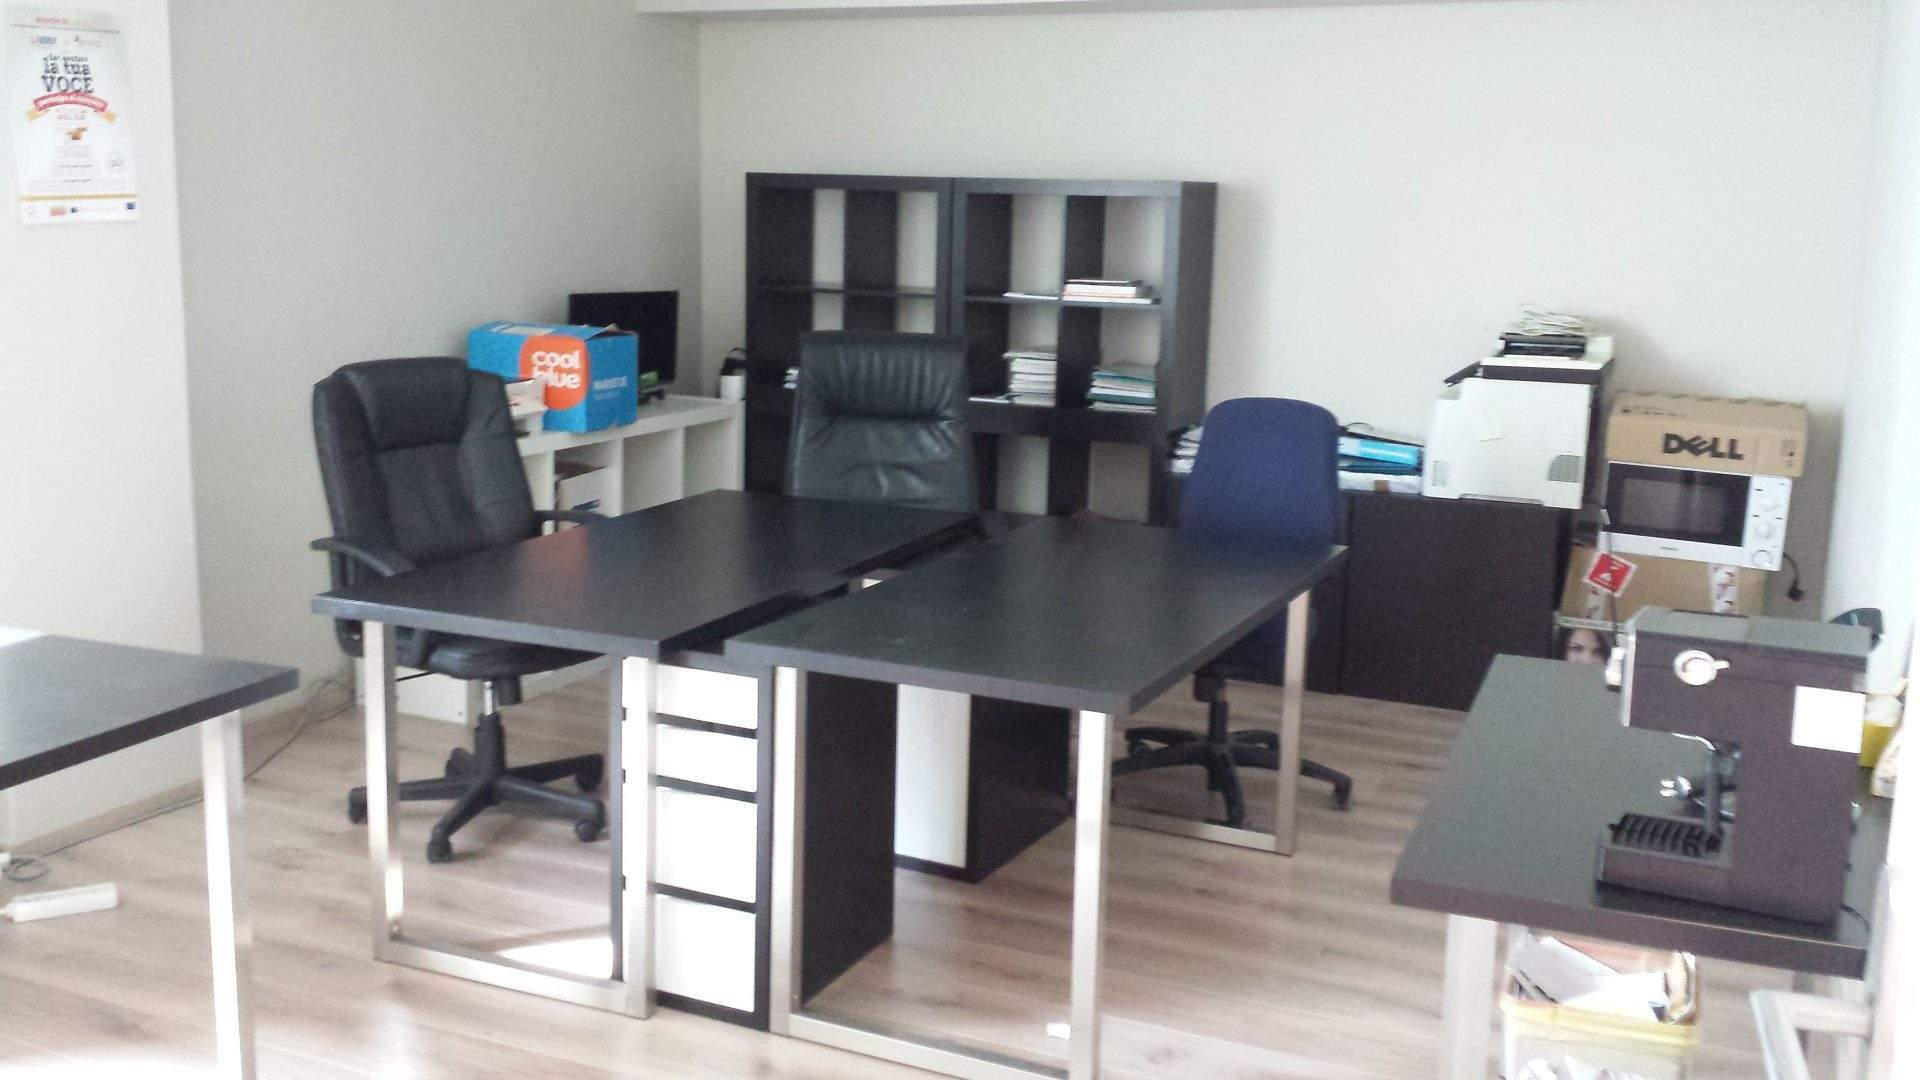 Office Space To Rent With ECAS